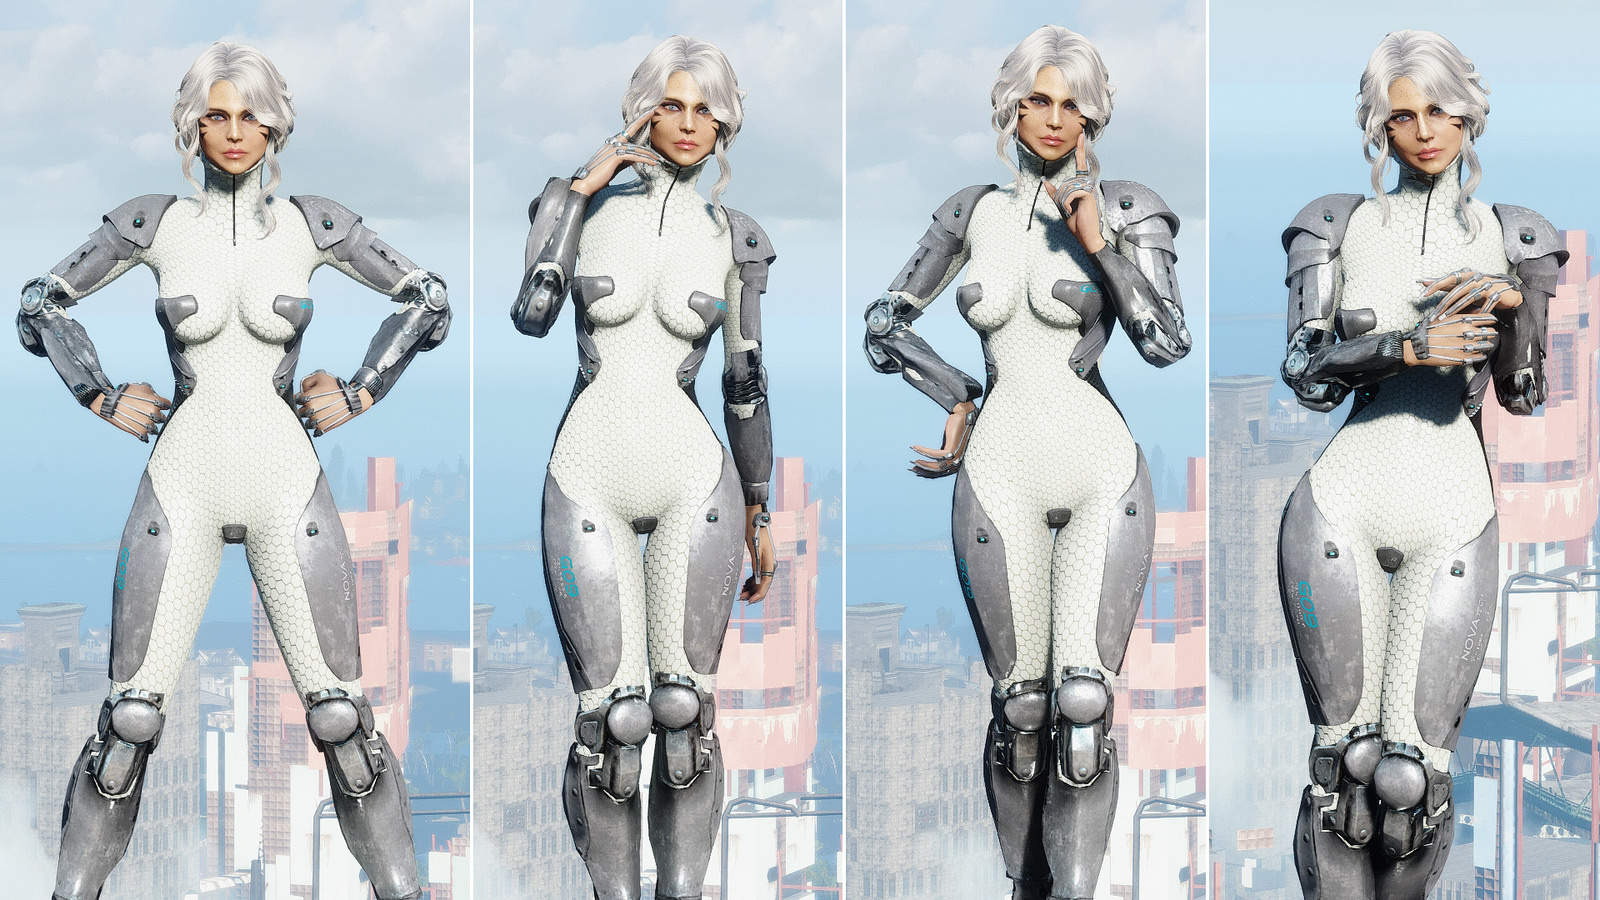 37789566446_48a554be14_h.jpg - Fallout 4